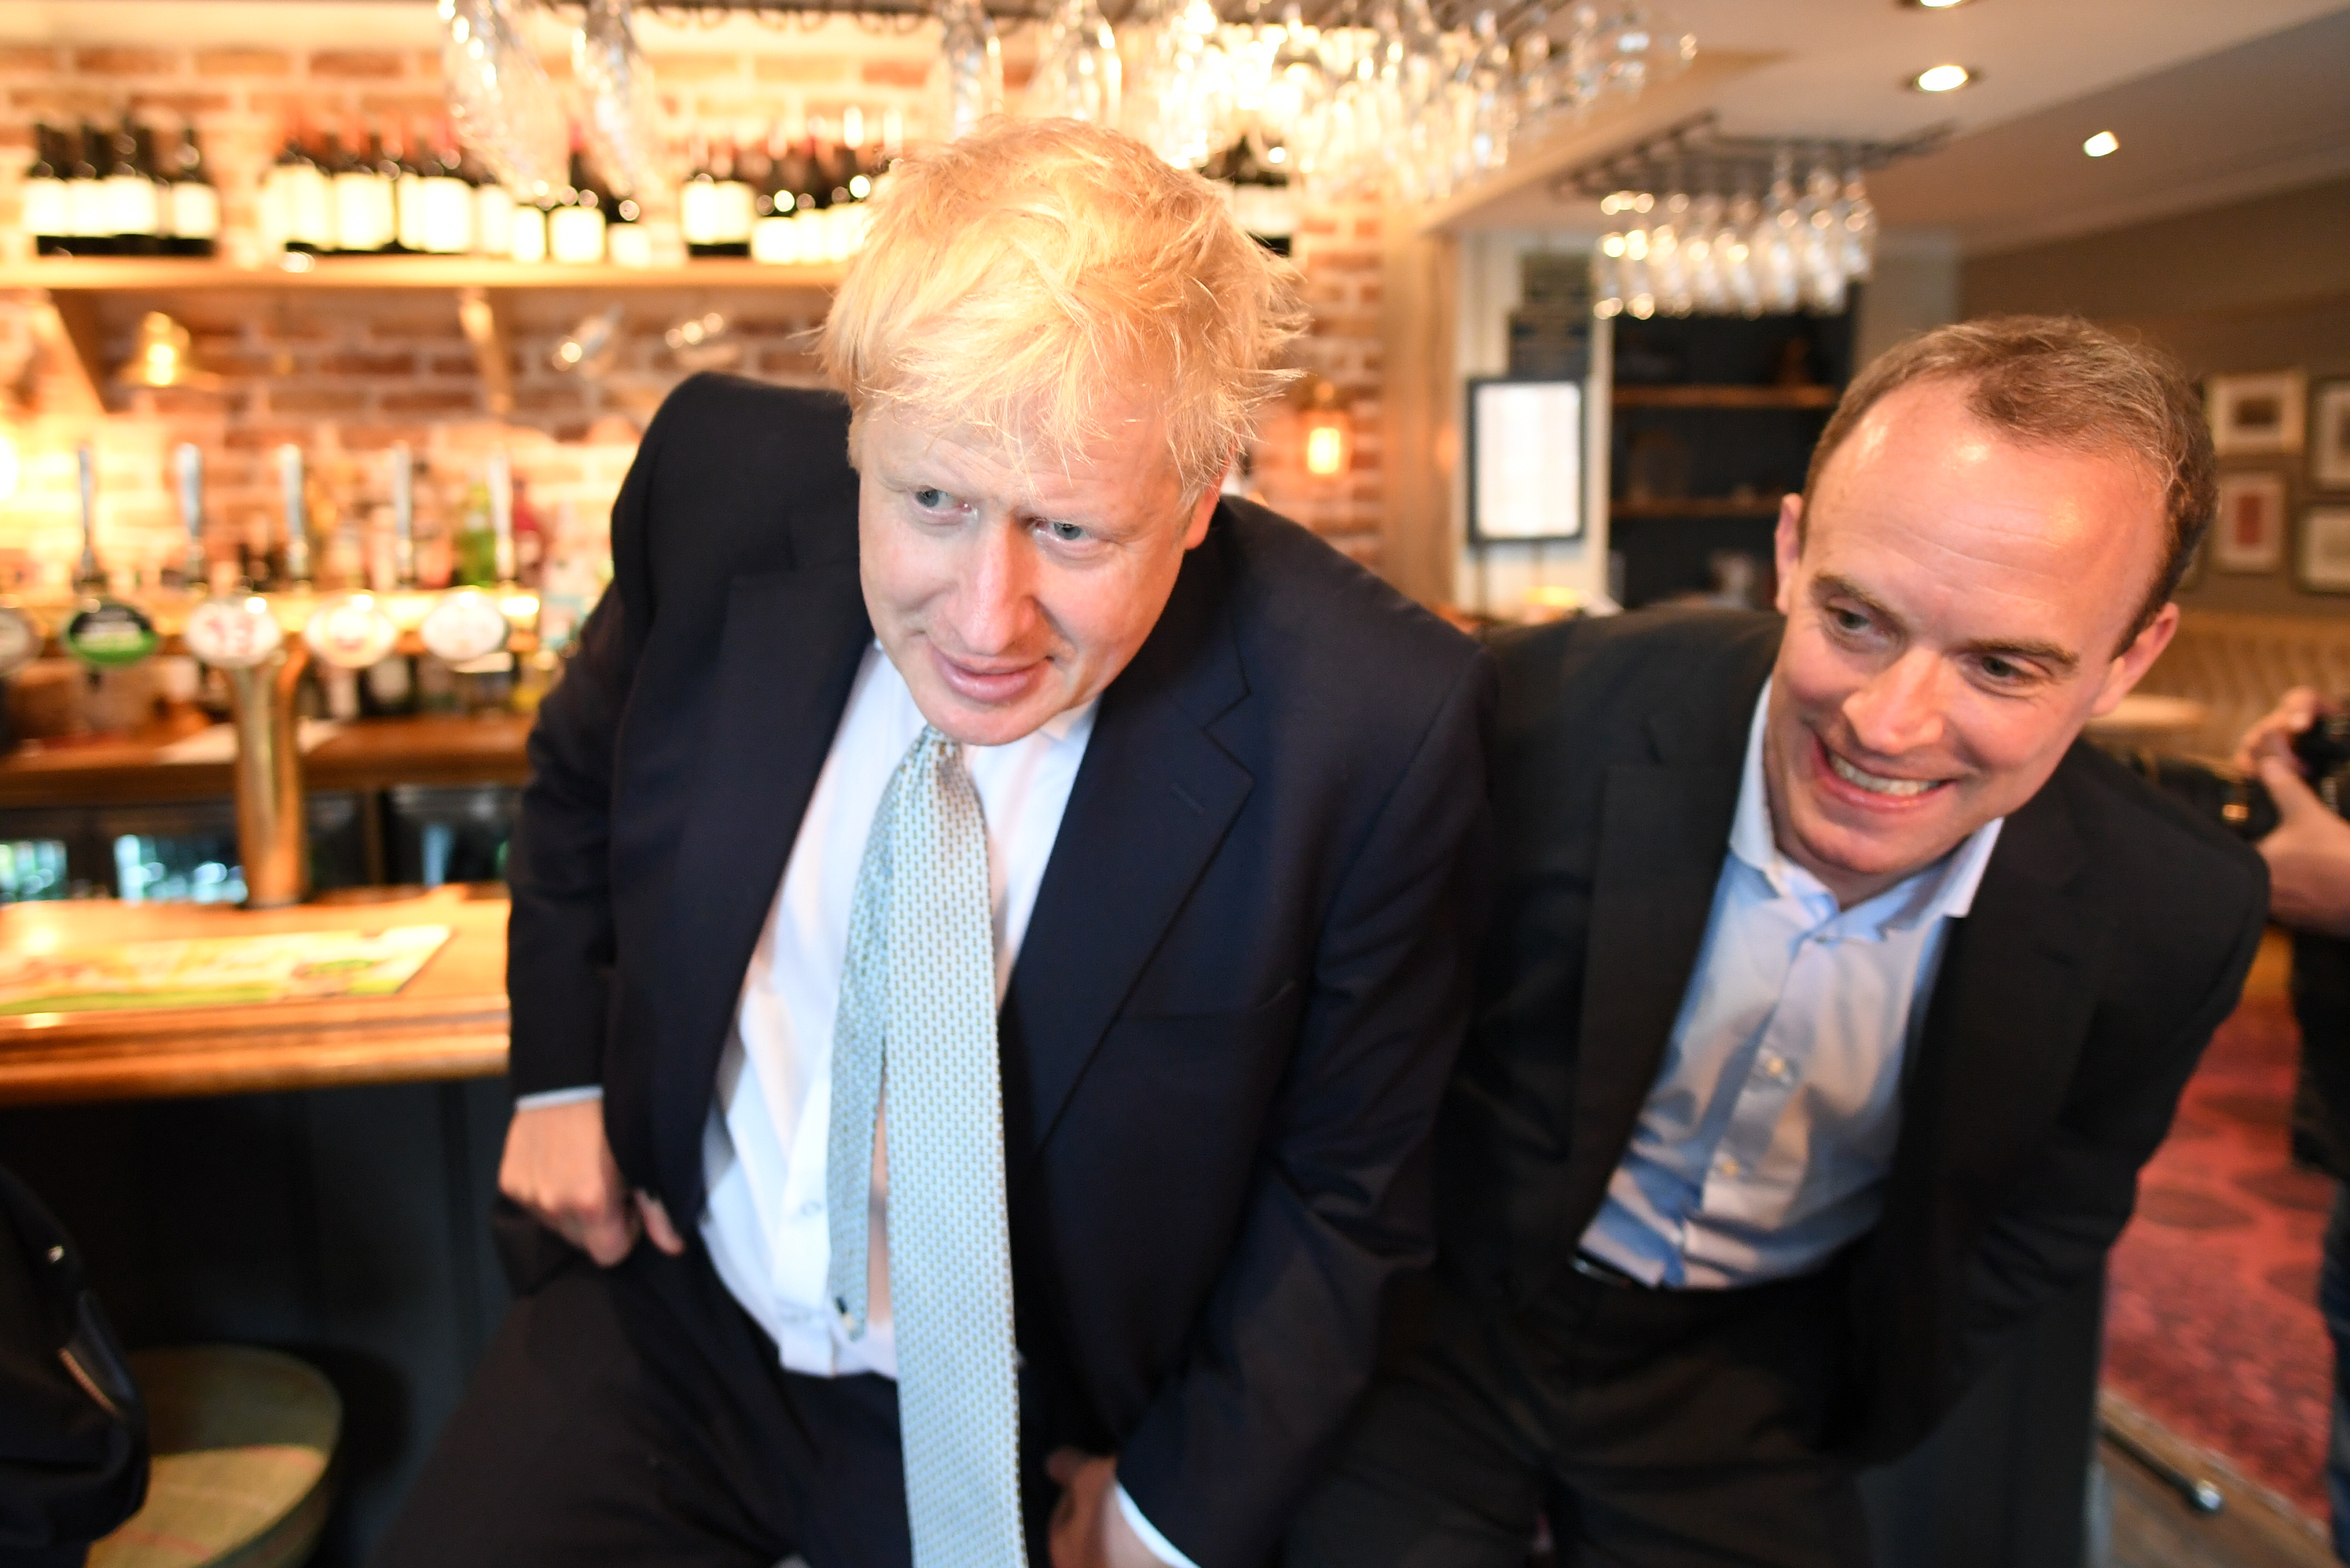 Conservative party leadership candidate Boris Johnson (left) and Dominic Rabb, in The Victoria public house in Oxshott, Surrey.